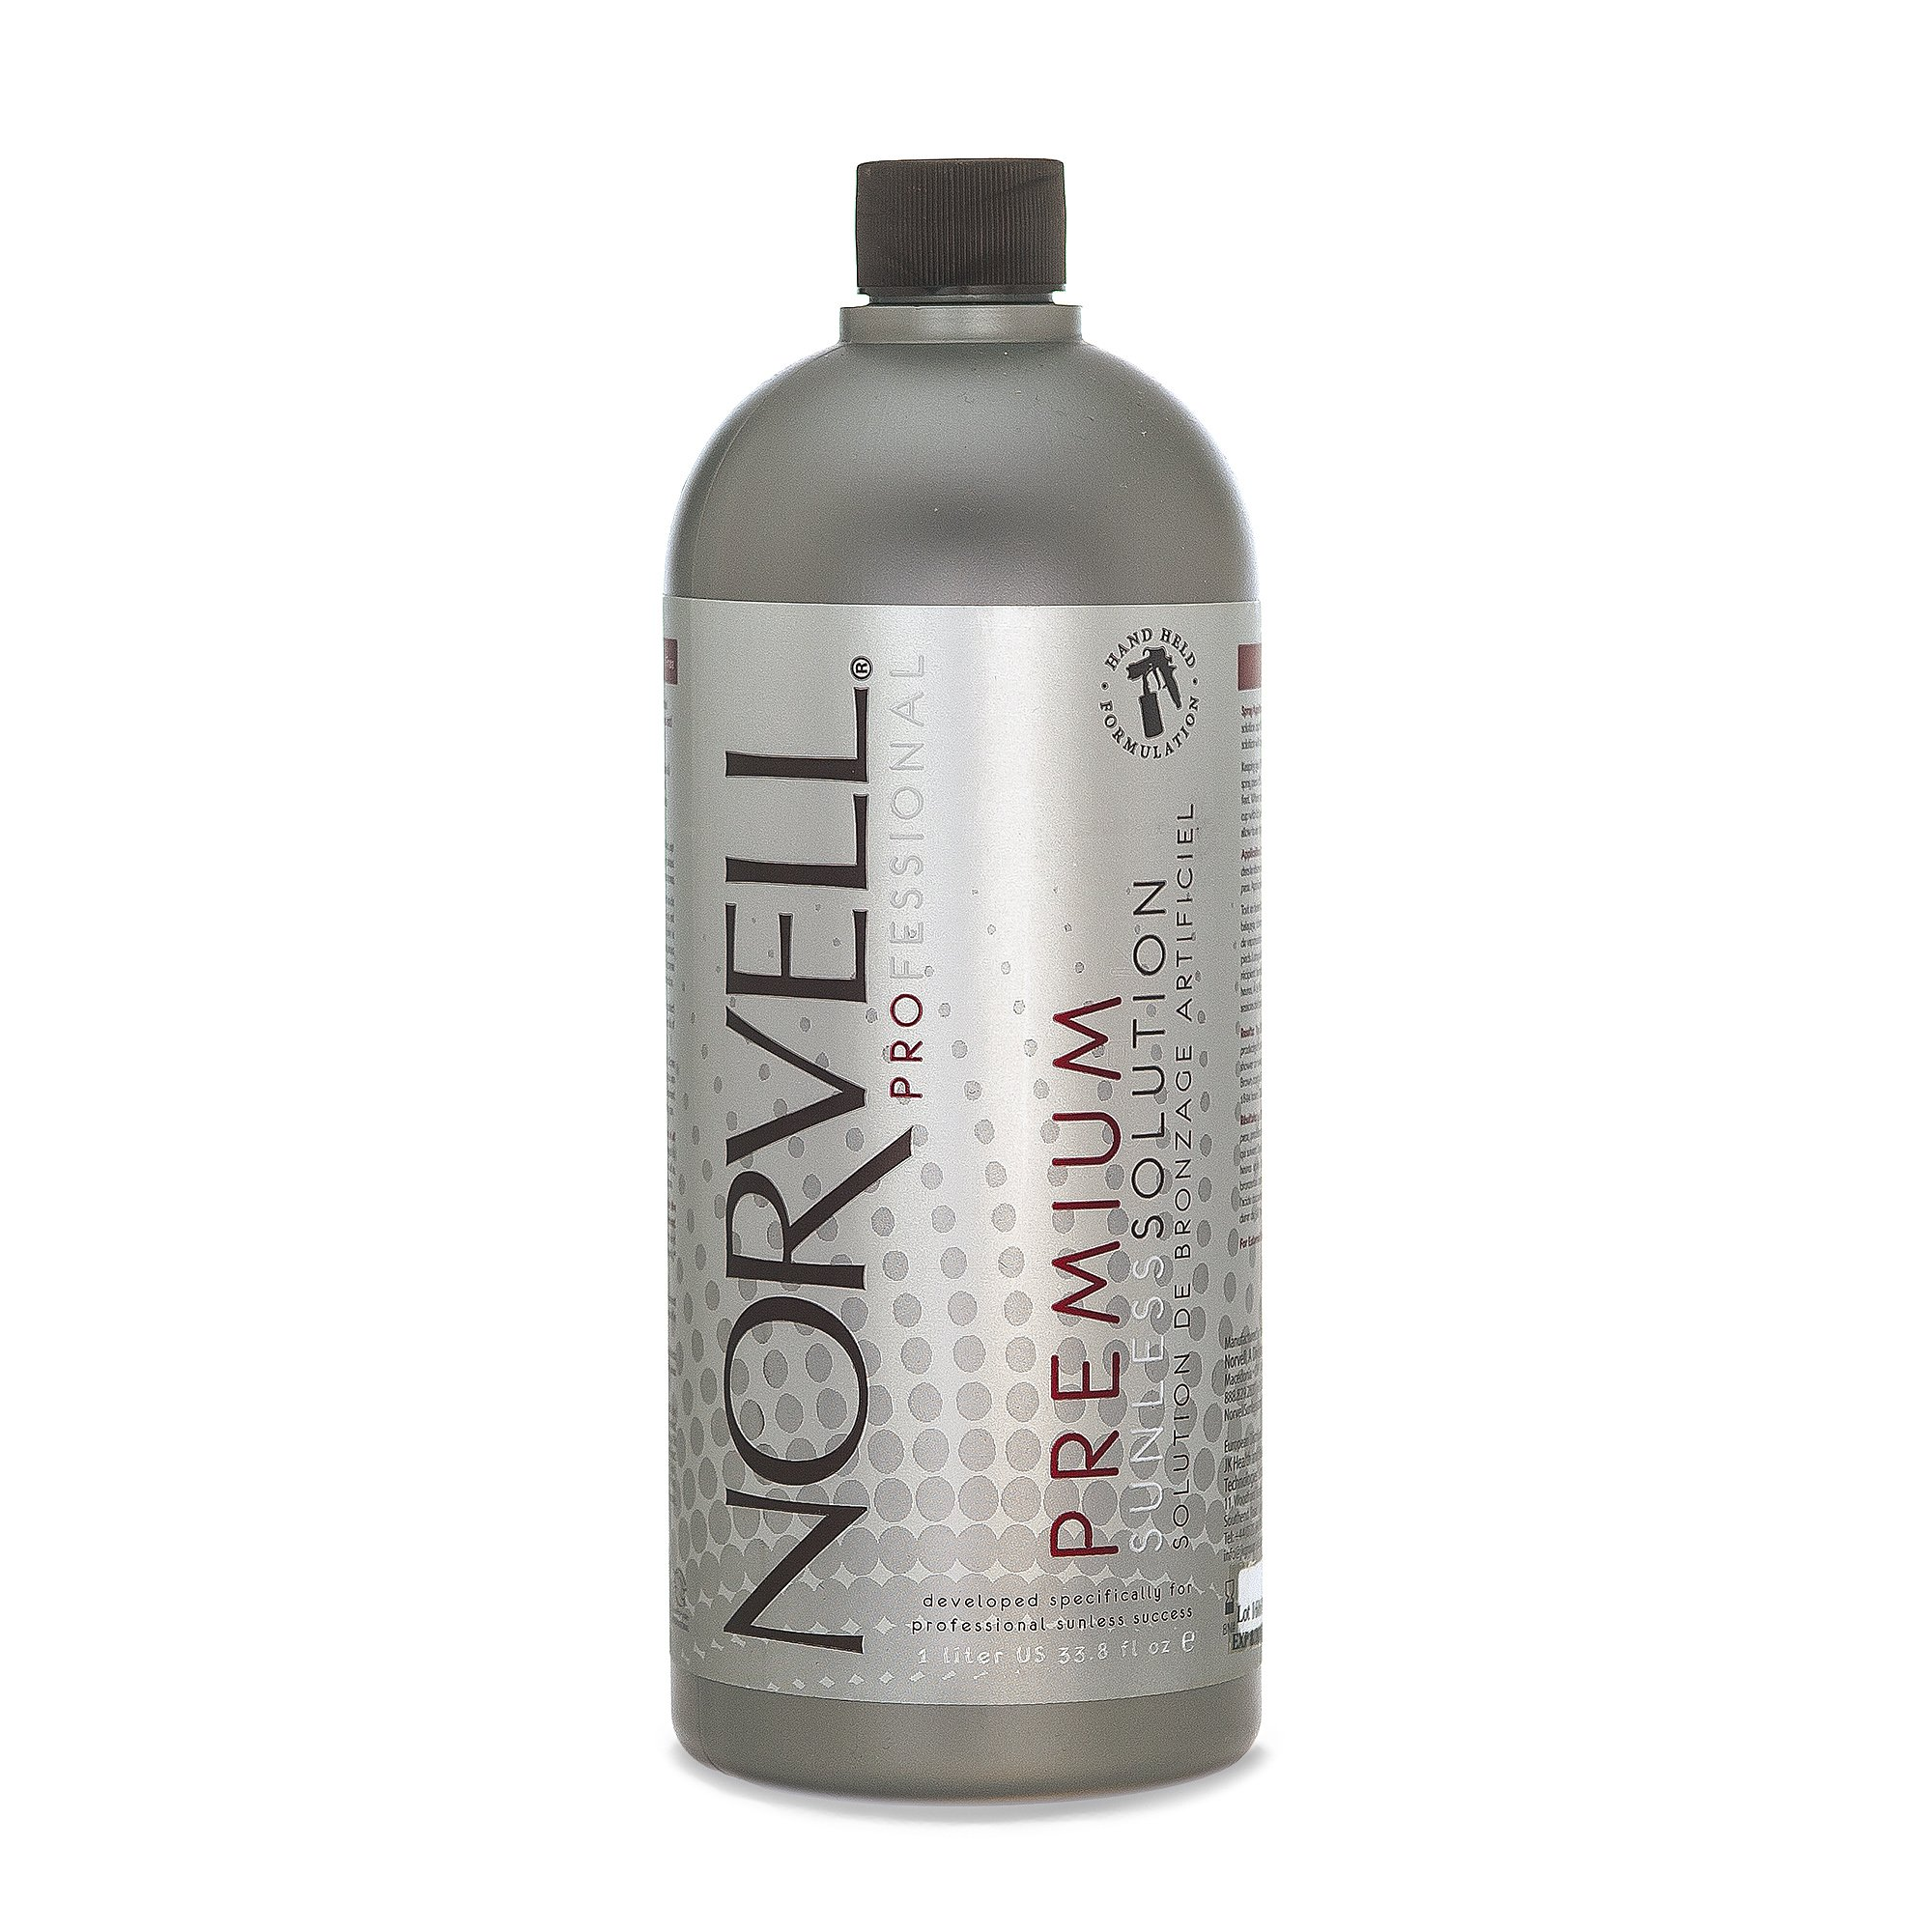 Norvell Premium Sunless Tanning Solution - Clear Plus, 1 Liter by Norvell